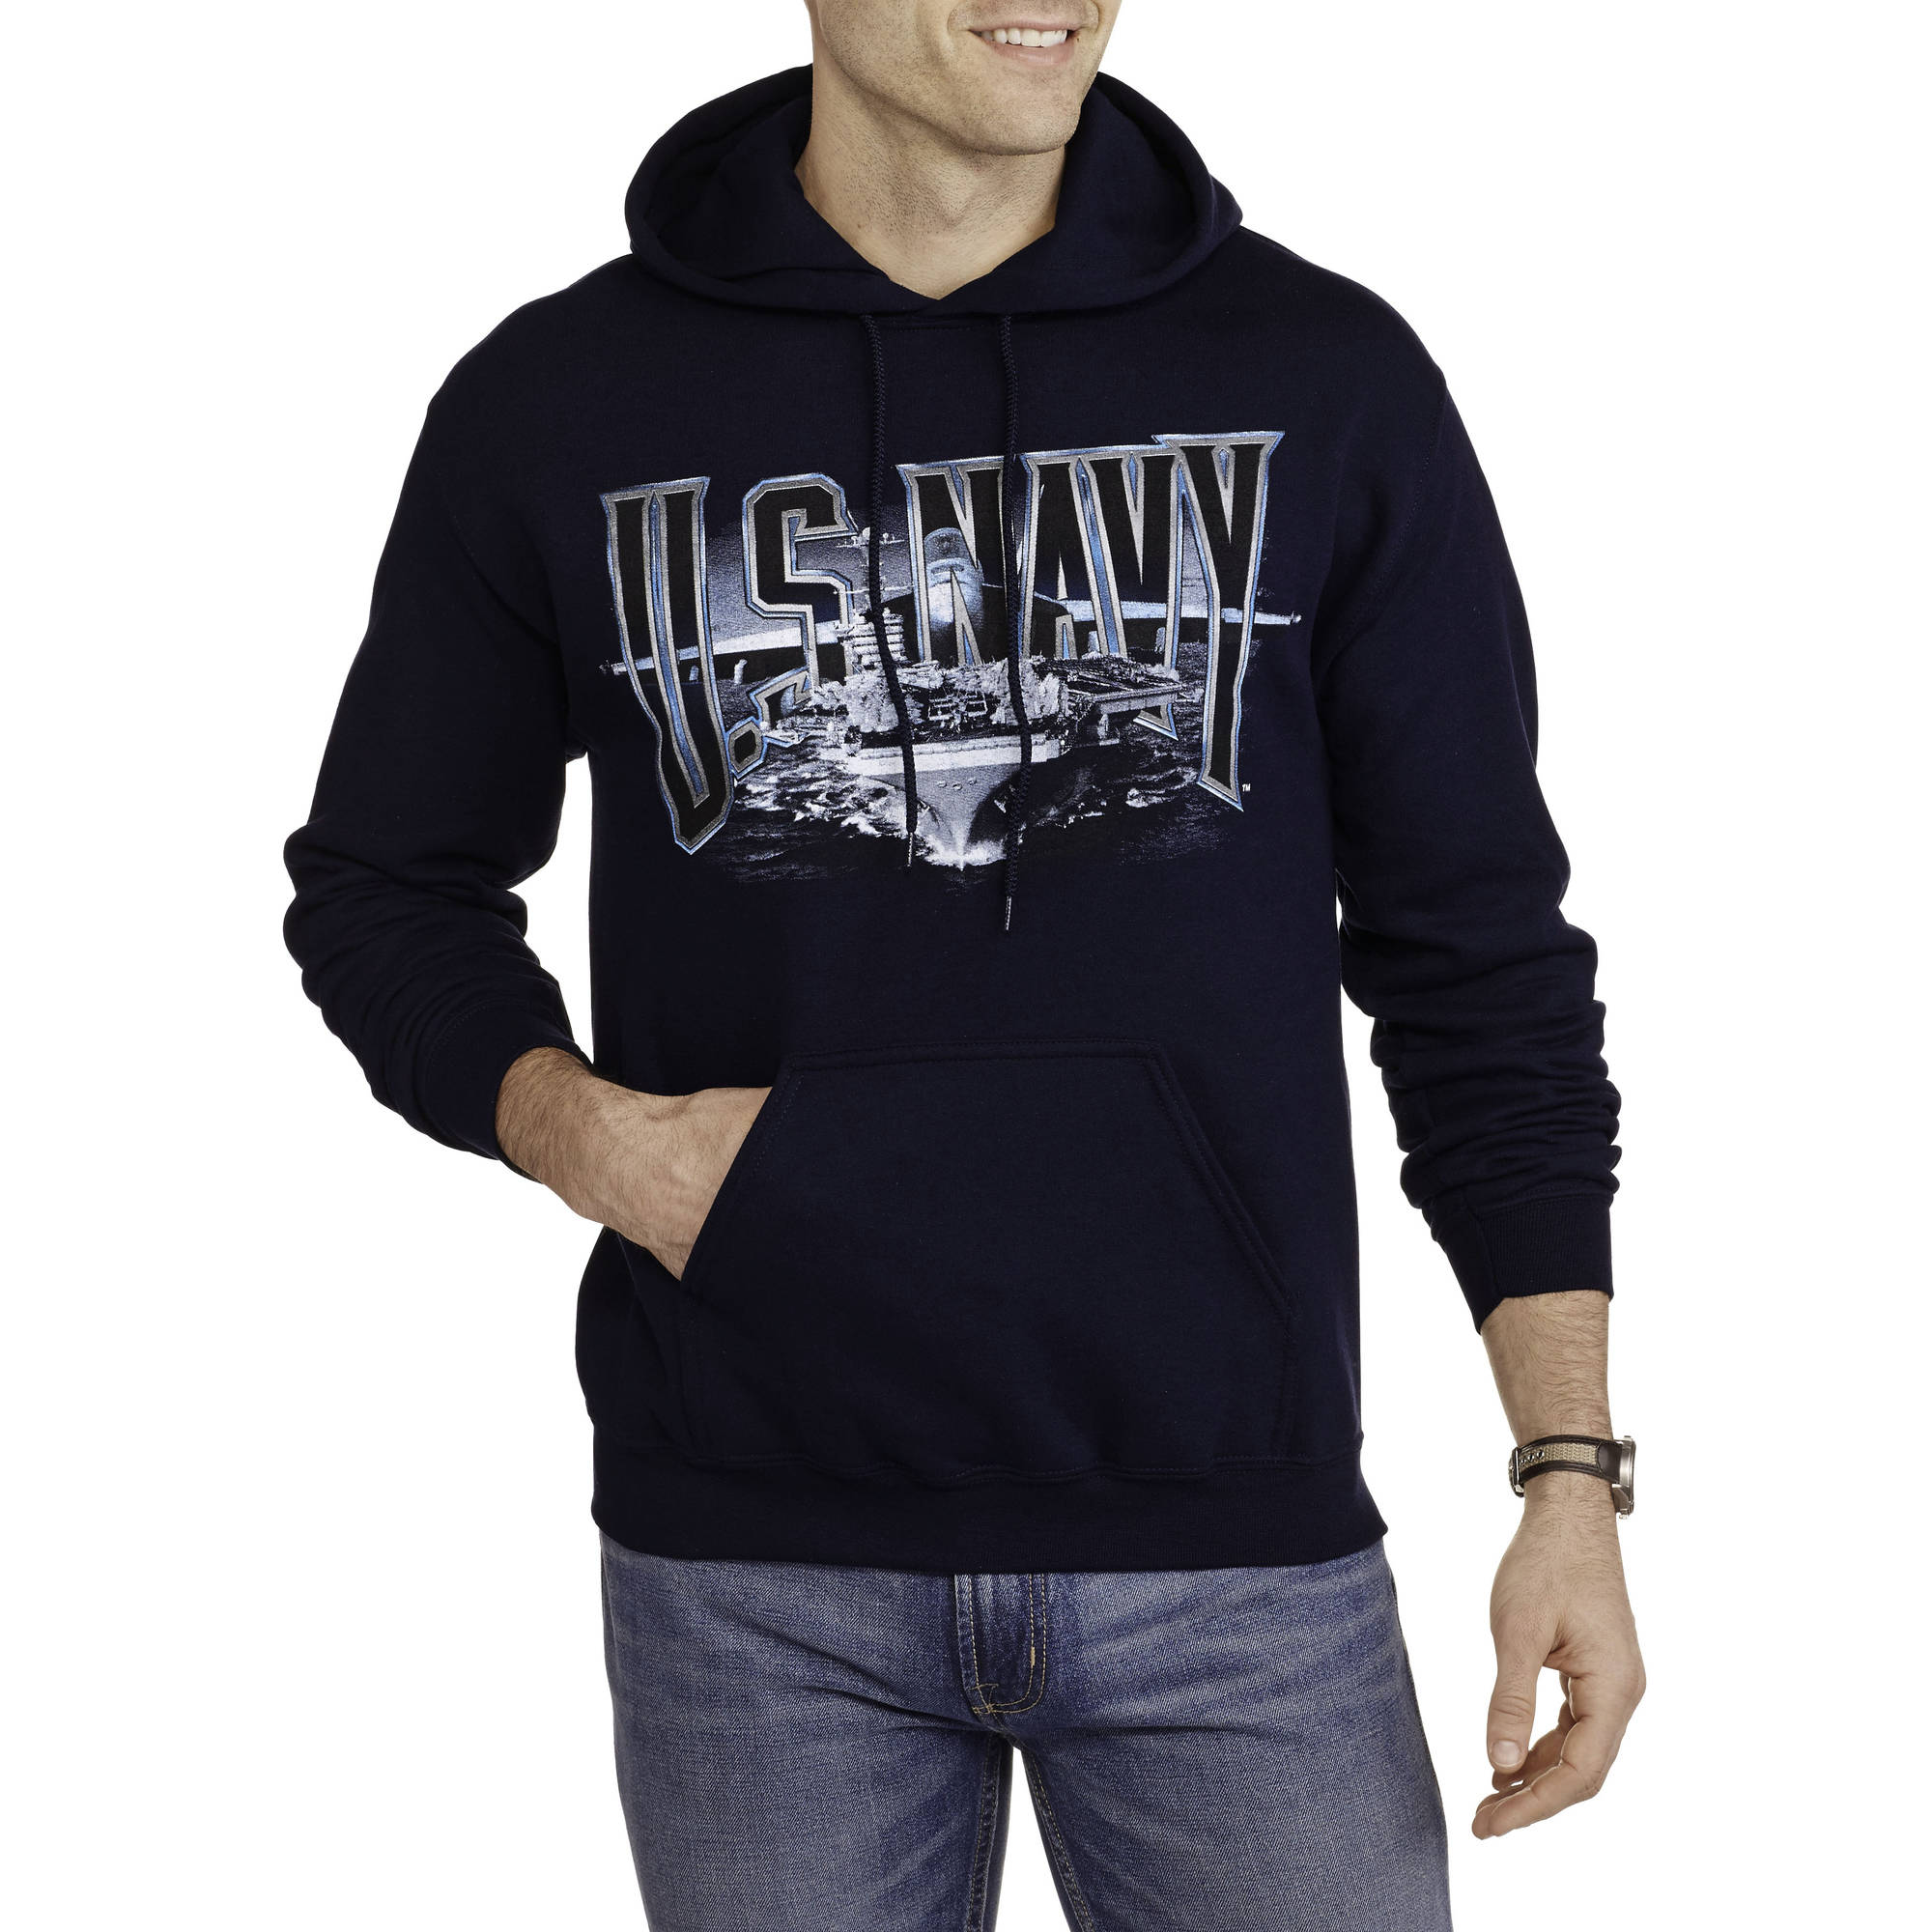 Big Men's Military Officially Licensed Navy Fleece Action Hoodie, 2XL